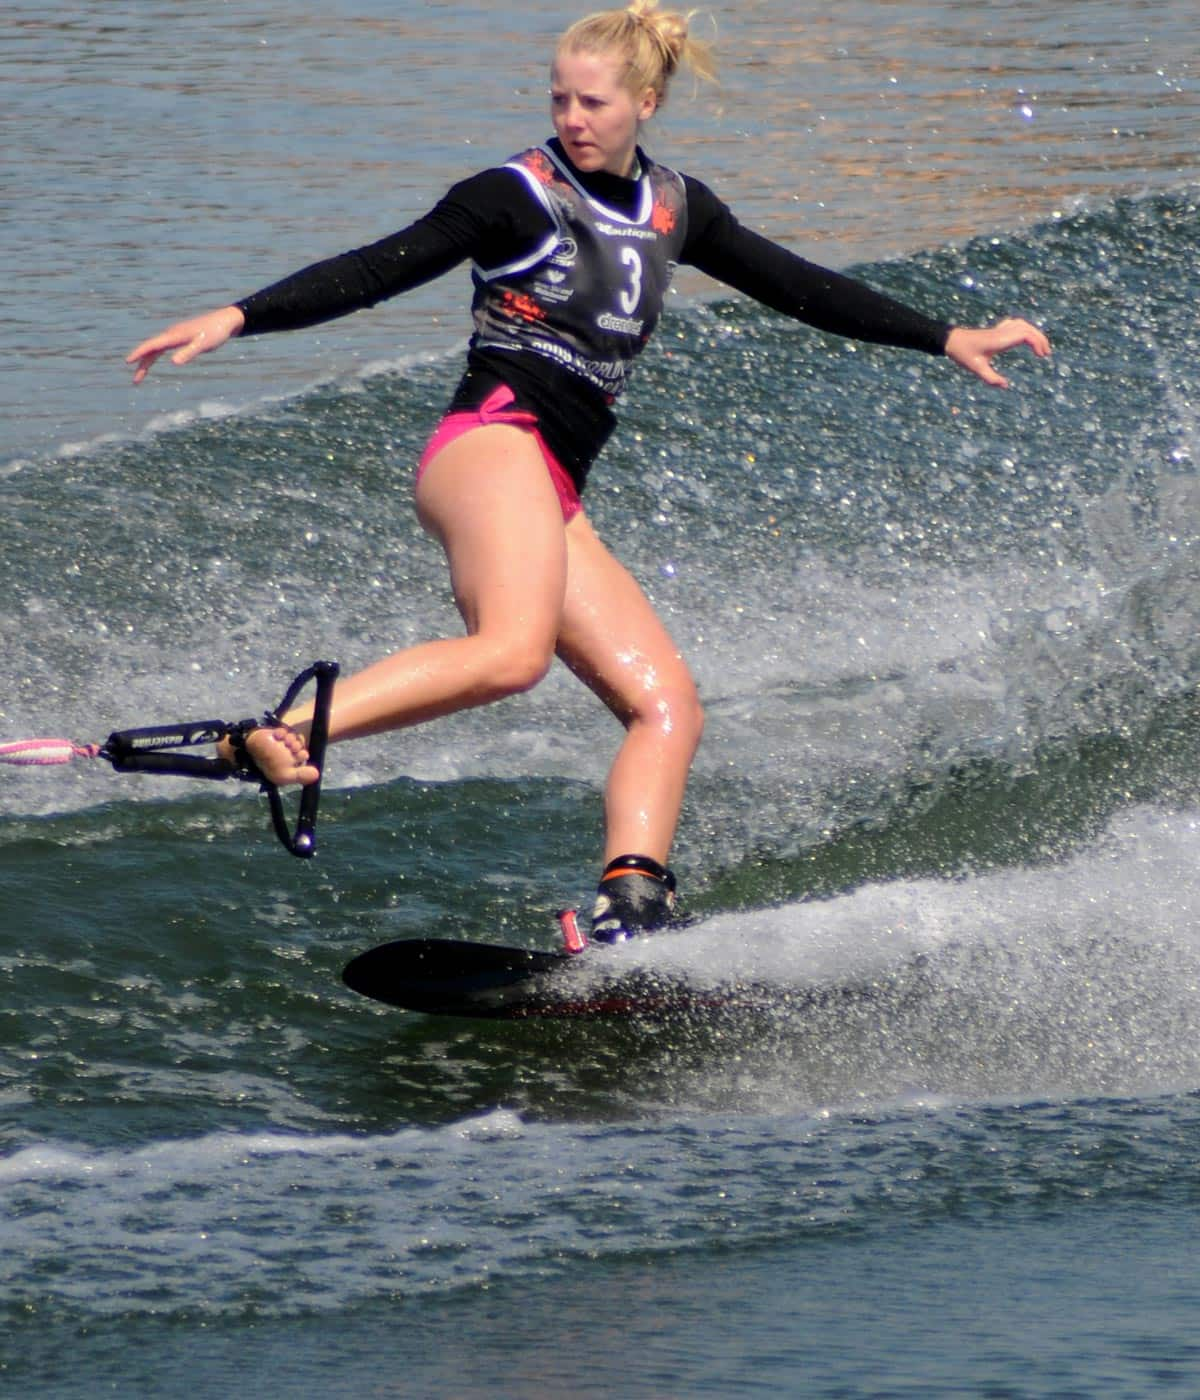 Whitney McClintock: Waterskiing is in my DNA